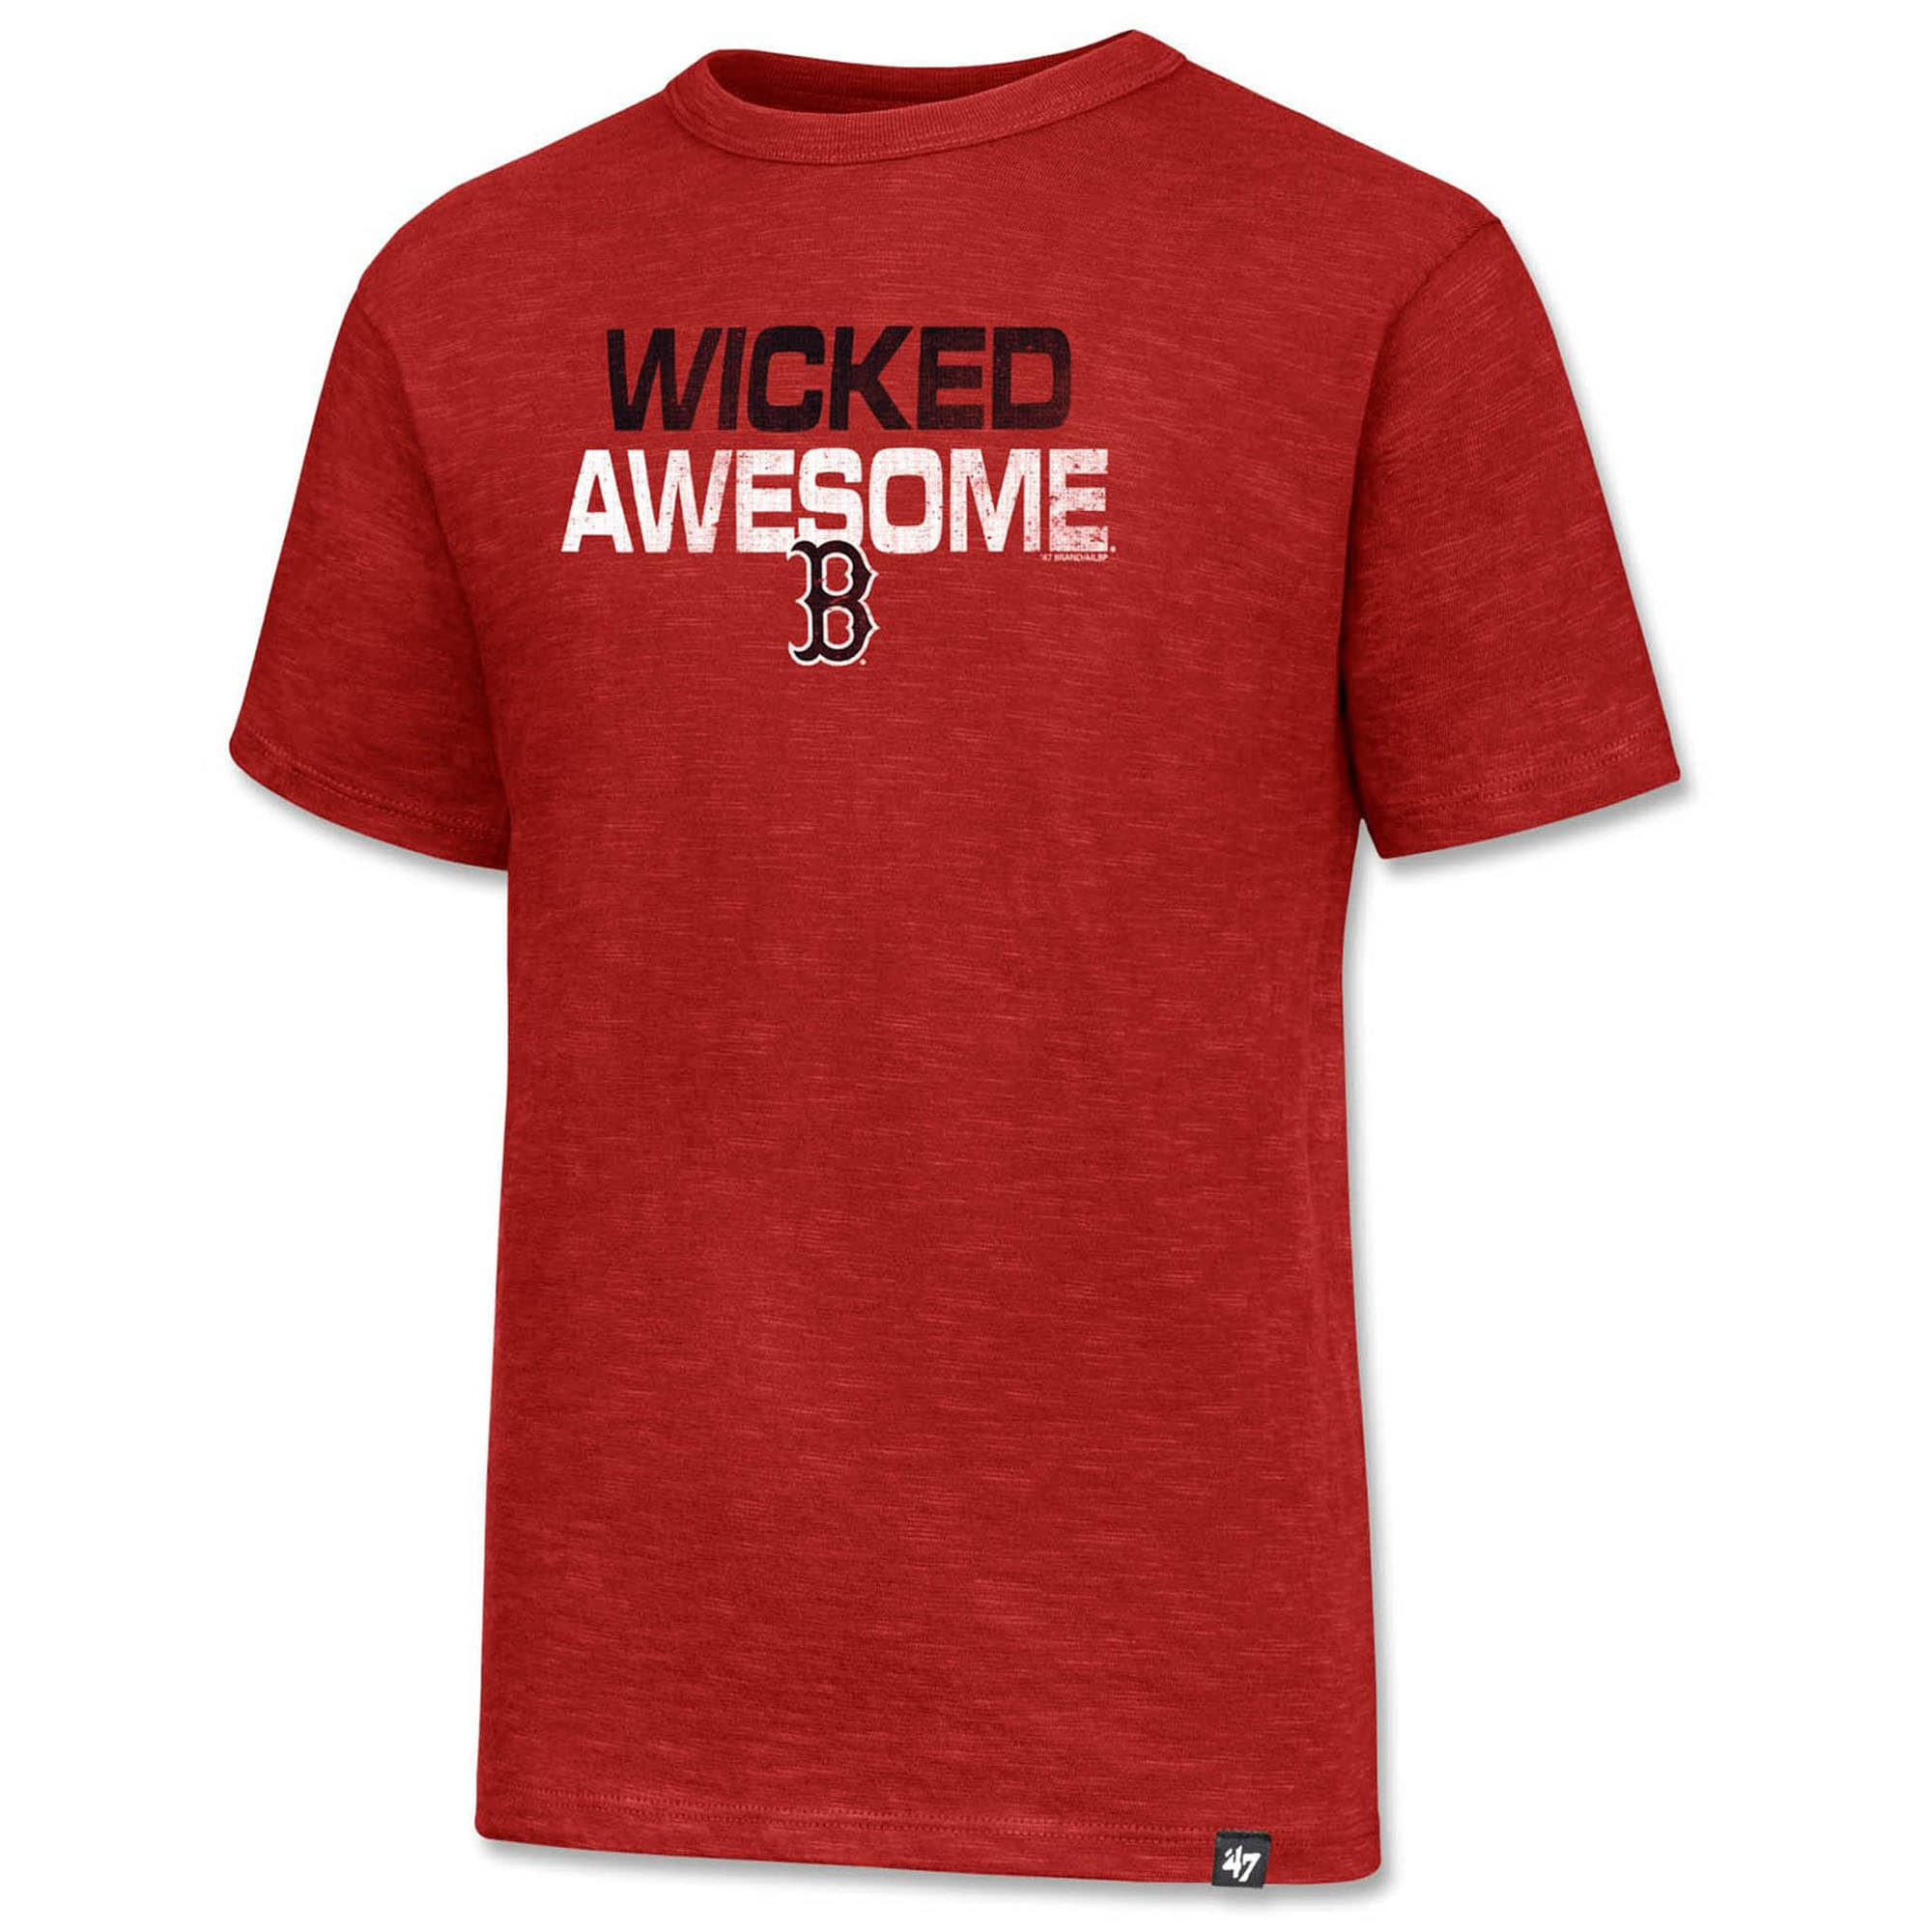 Boston Red Sox '47 Youth Wicked Awesome T-Shirt - Red